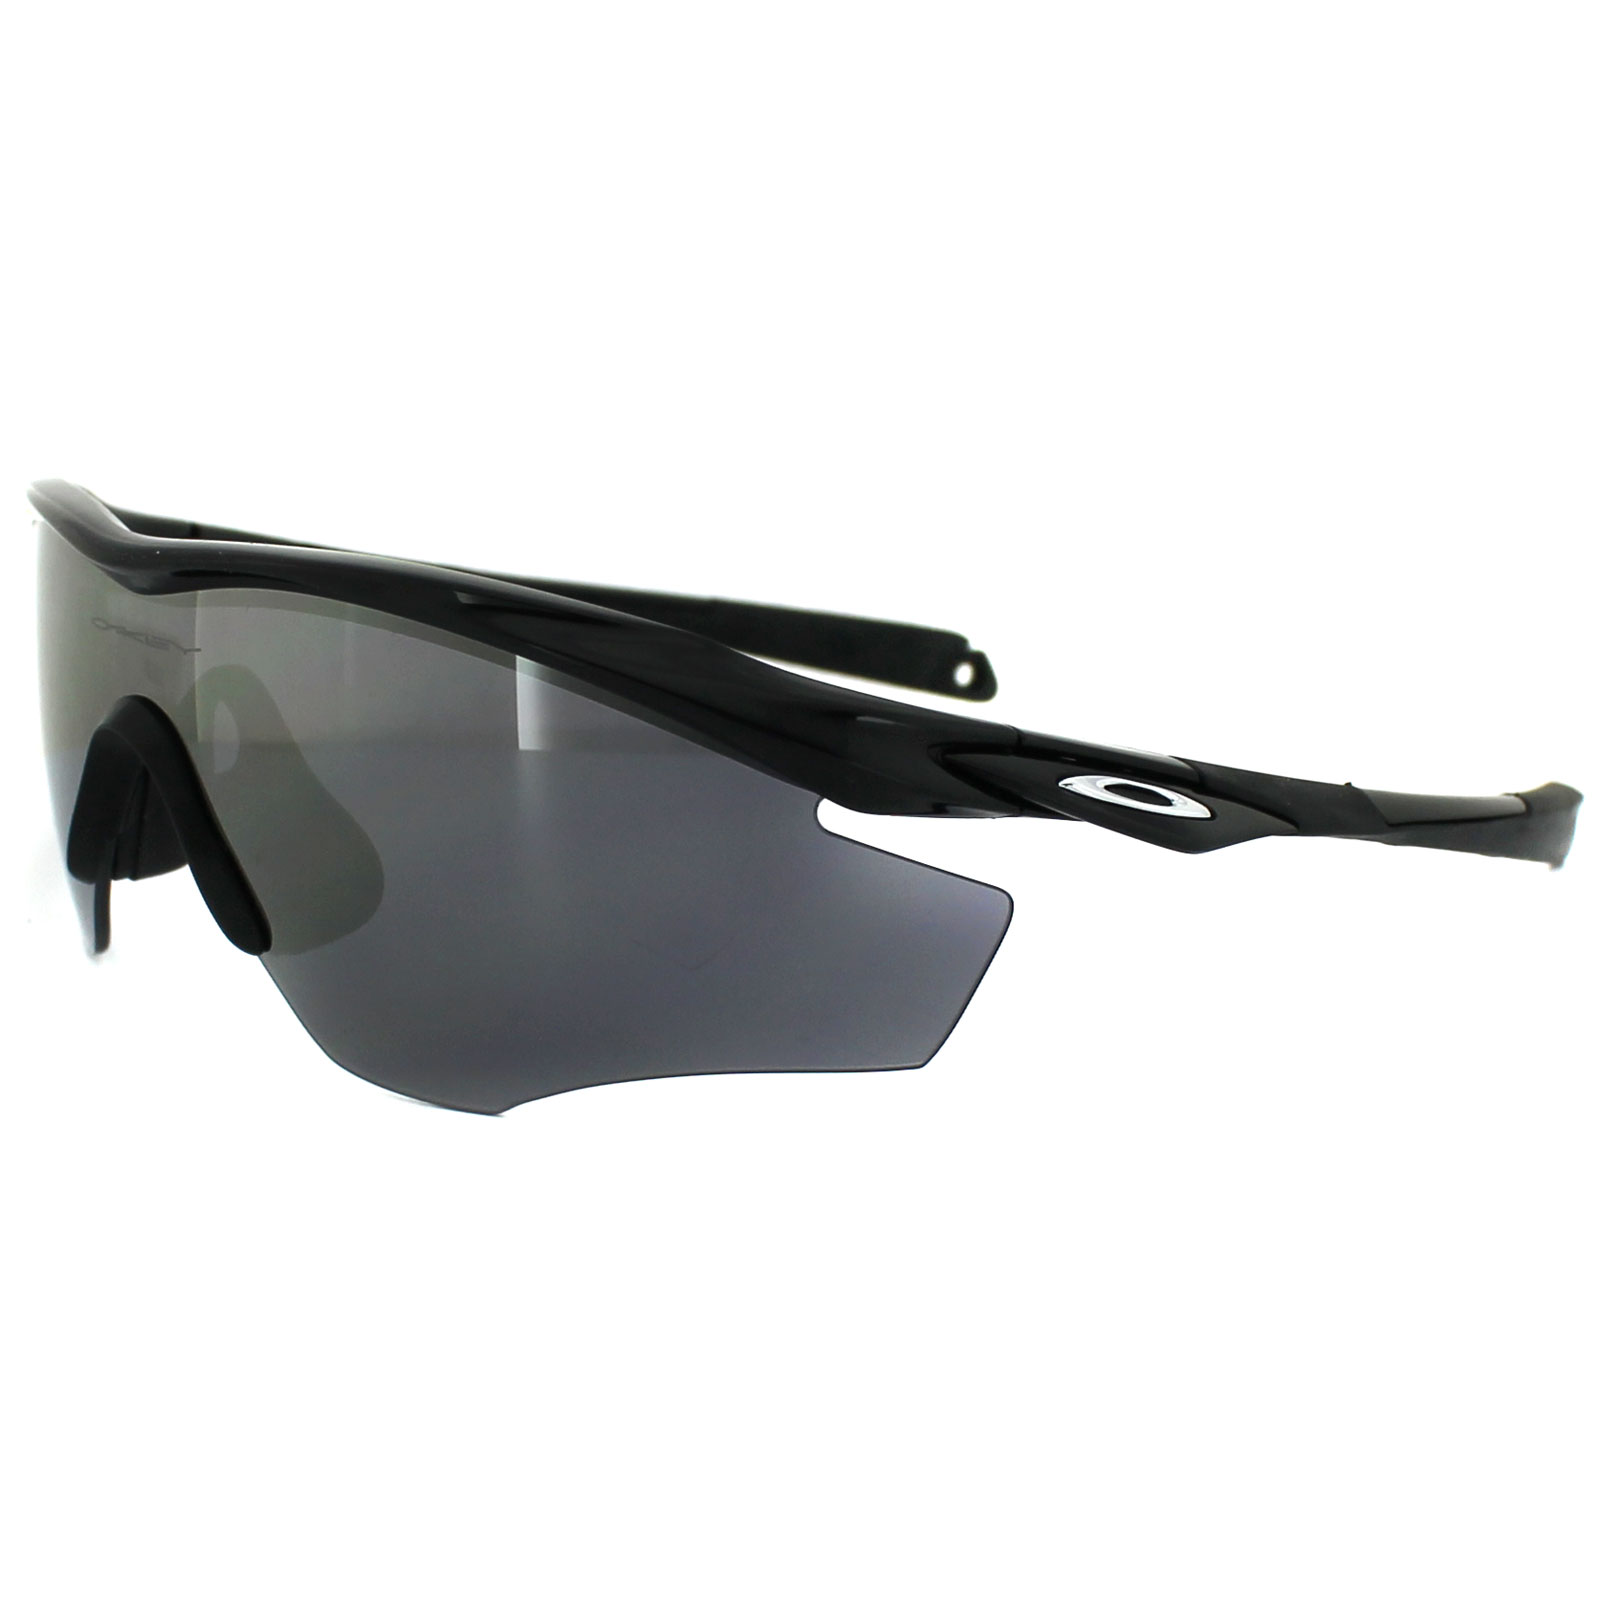 best deals on oakley sunglasses kz2a  Oakley M2 Frame Sunglasses